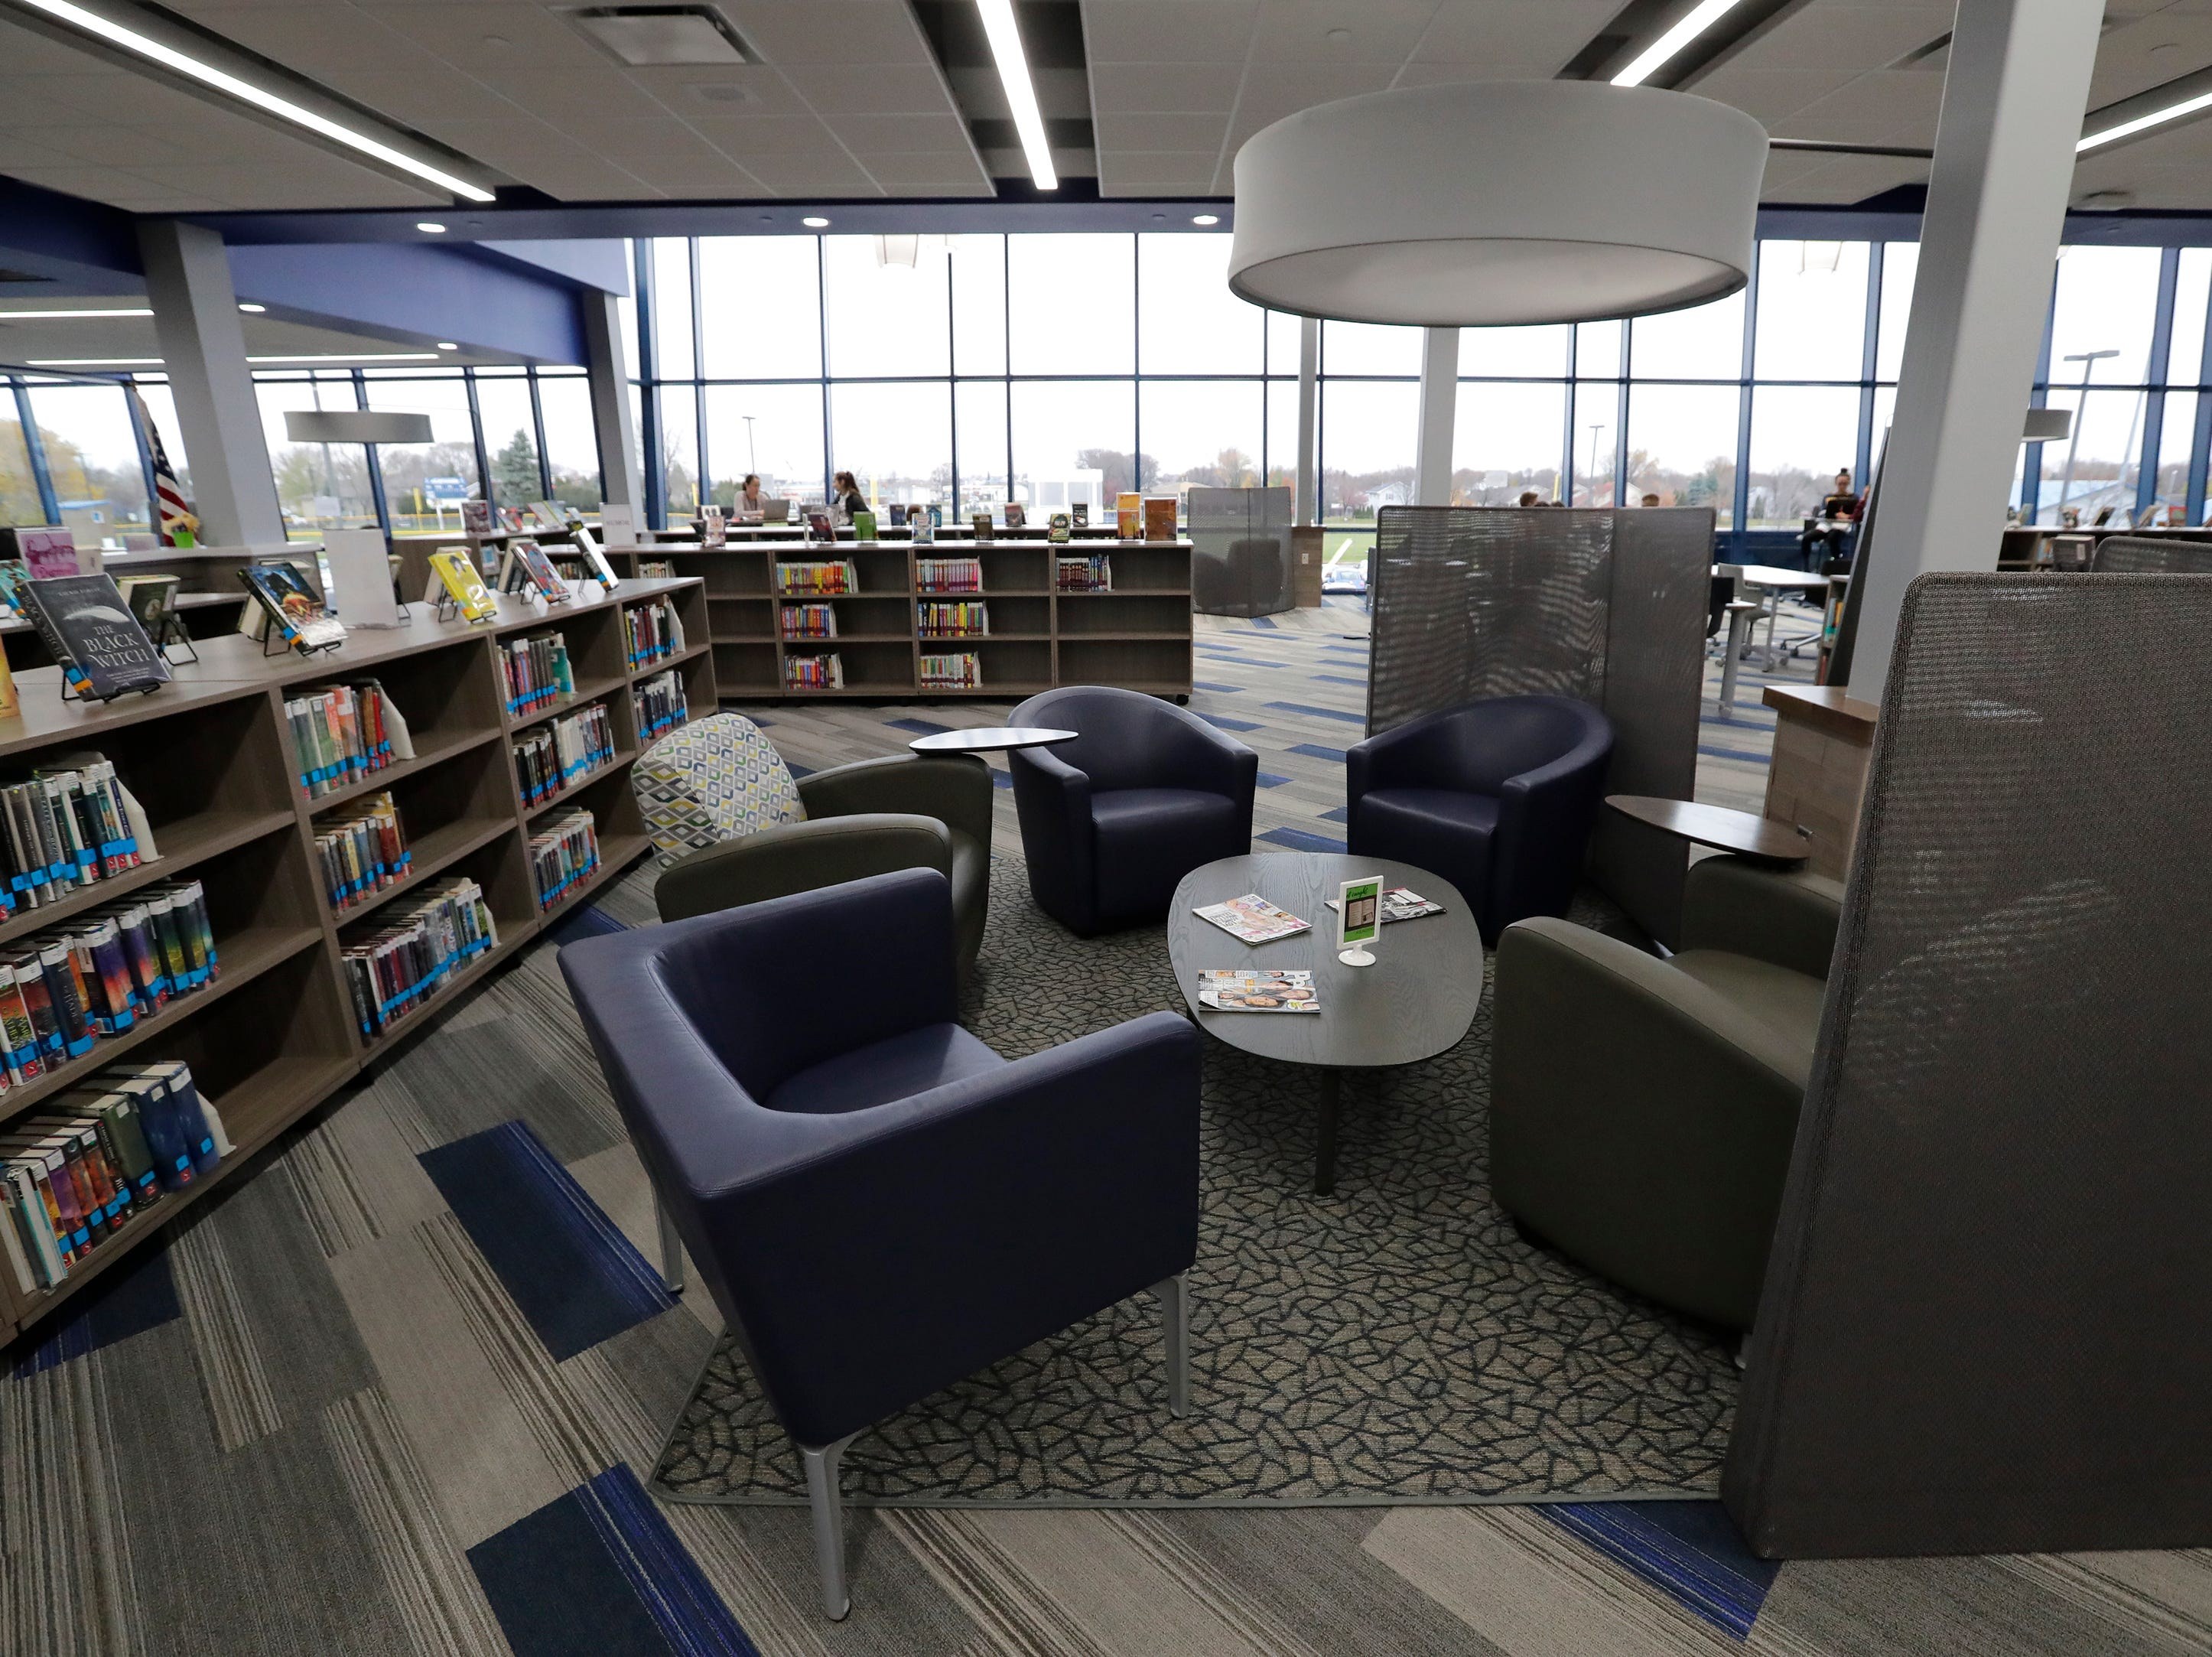 An area of the new library at Little Chute High School Tuesday, November 6, 2018, in Little Chute, Wis. 